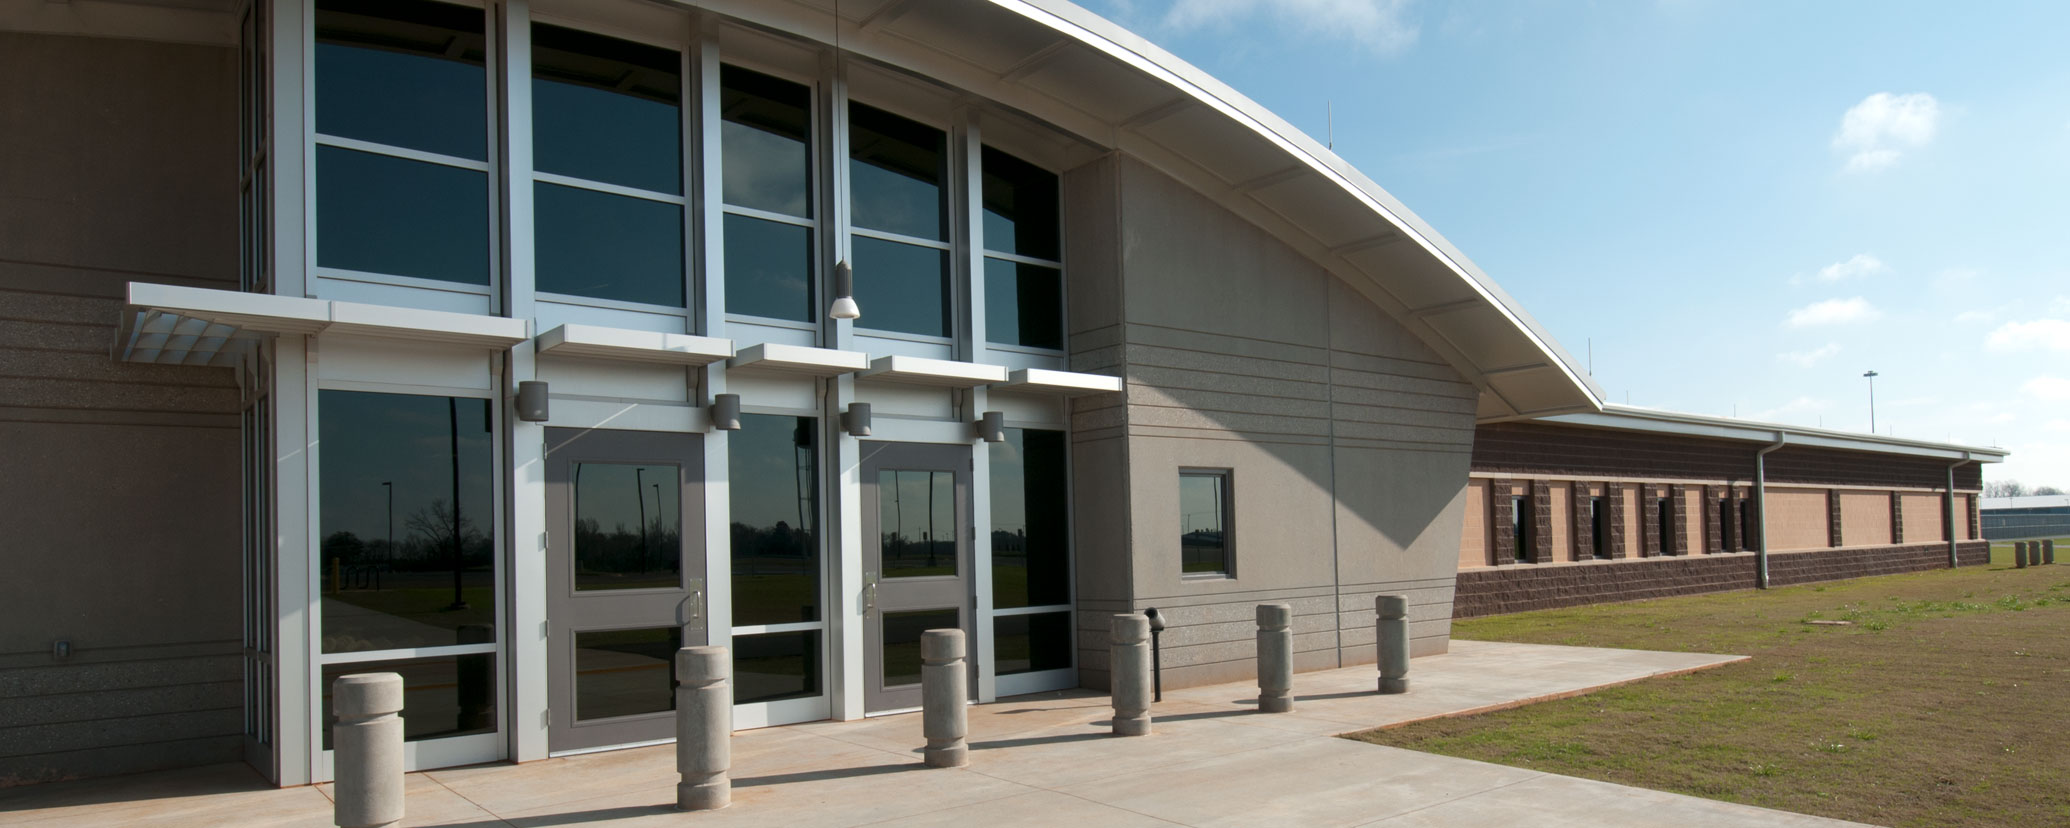 Caddell Construction GC on Aliceville Federal correctional institute